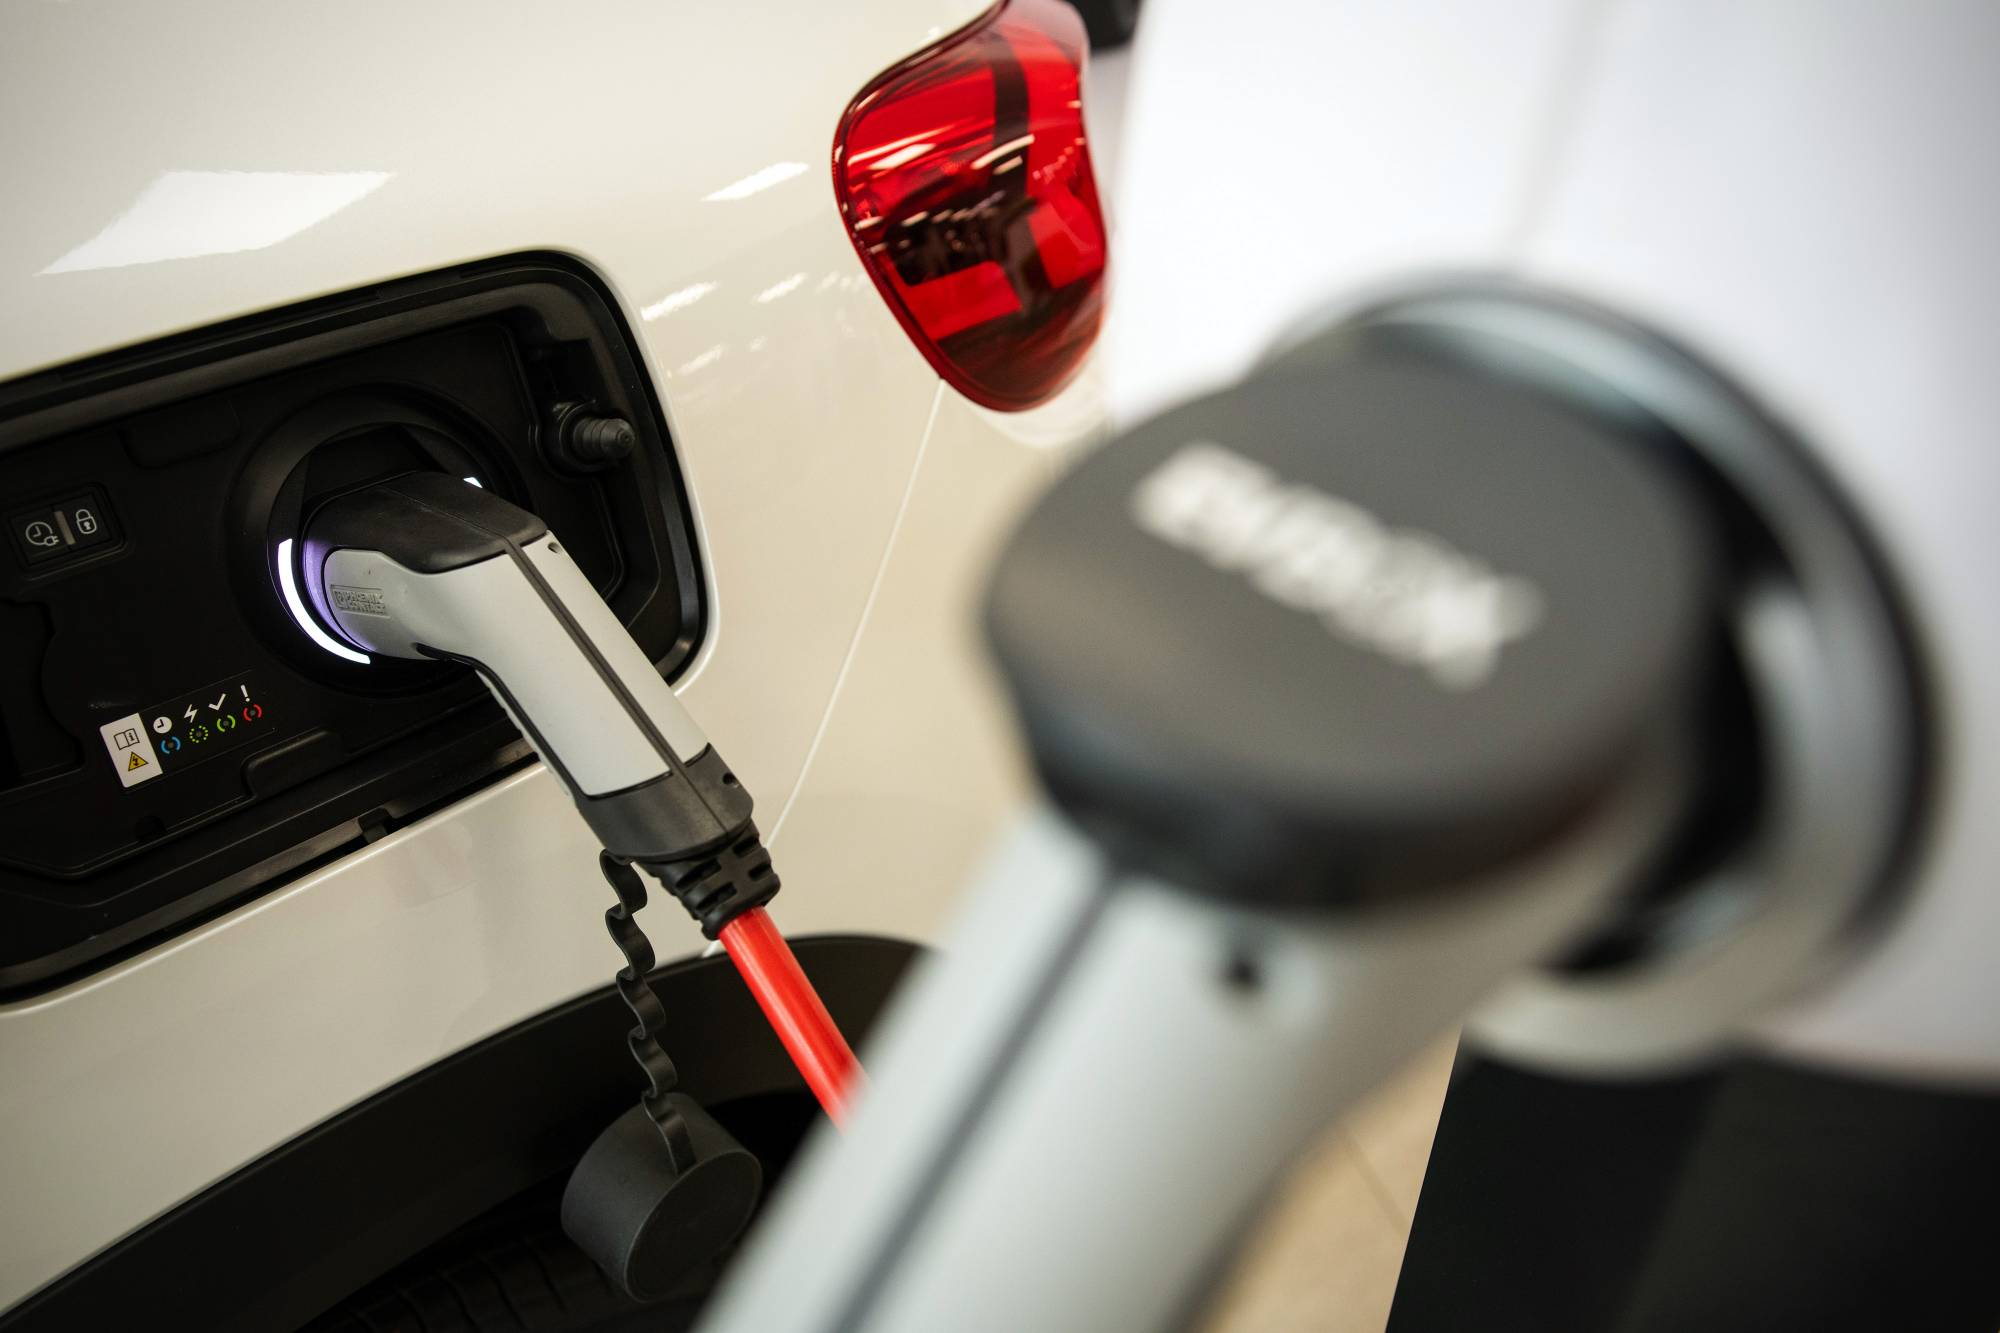 A Citroen C5 Aircross hybrid sports utility vehicle charges at a Citroen automobile showroom in Paris on Thursday. The EU on Wednesday laid out proposals that would consign the internal combustion engine to history. | BLOOMBERG